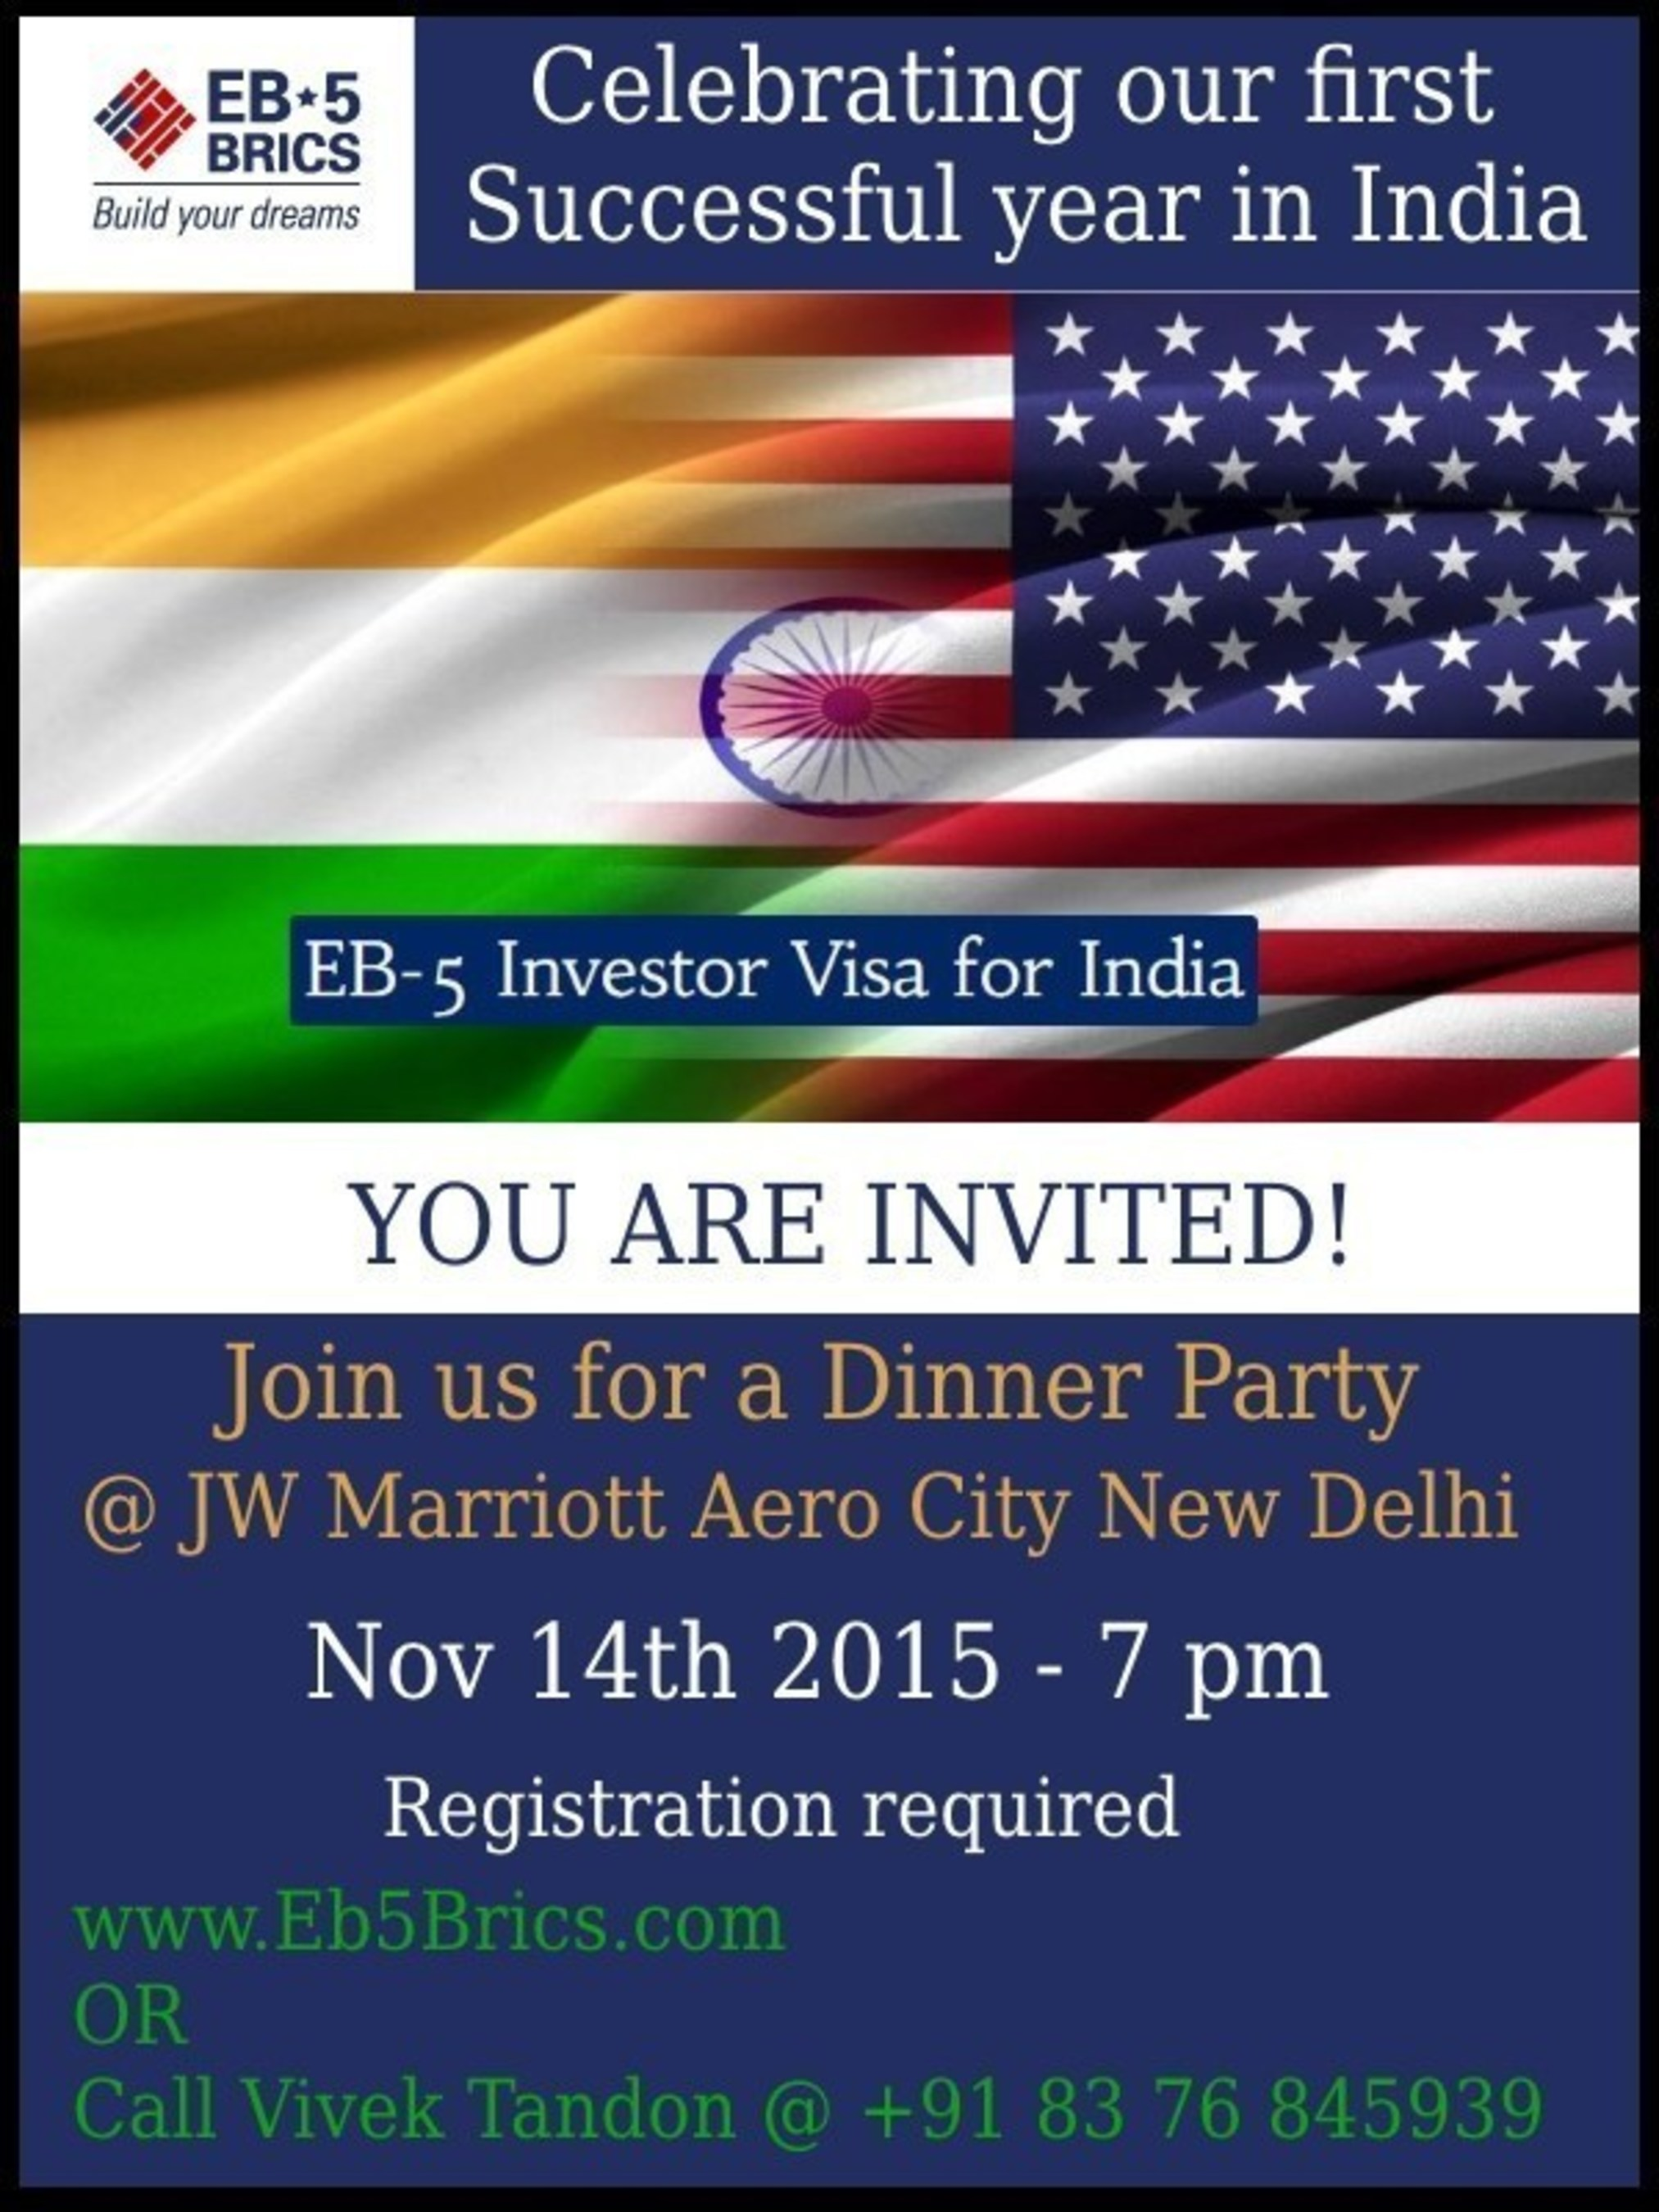 EB5 BRICS Announces Event to Celebrate One Year of Promoting Immigrant Investor Green Card Program